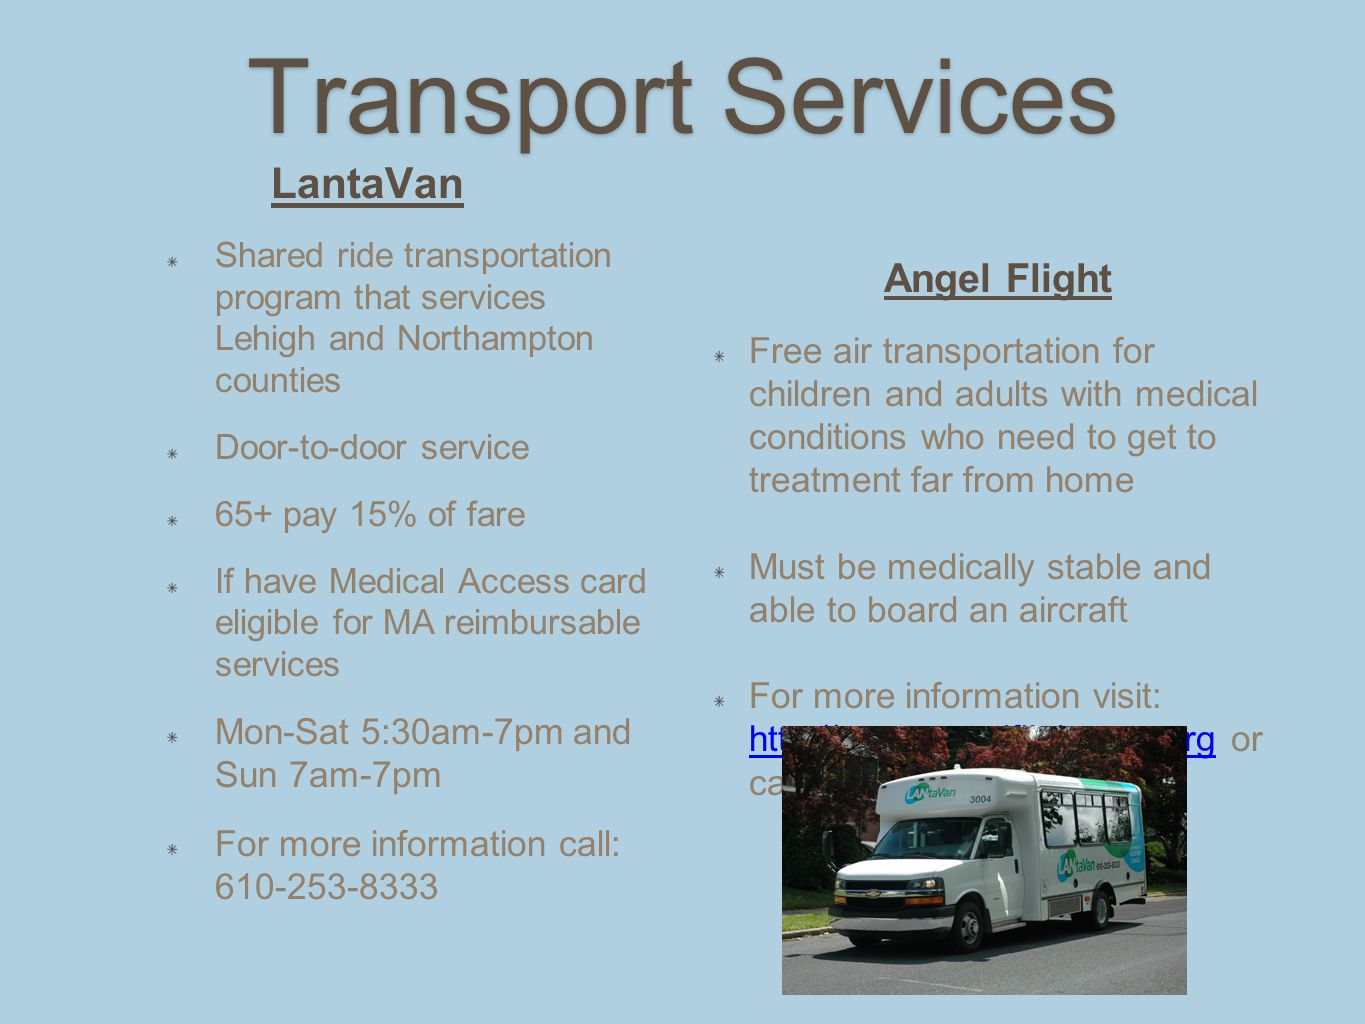 Transport Services LantaVan Shared ride transportation program that services Lehigh and Northampton counties Door-to-door service 65+ pay 15% of fare If have Medical Access card eligible for MA reimbursable services Mon-Sat 5:30am-7pm and Sun 7am-7pm For more information call: 610-253-8333 Angel Flight Free air transportation for children and adults with medical conditions who need to get to treatment far from home Must be medically stable and able to board an aircraft For more information visit: http://www.angelflighteast.org or call 610-940-1717 http://www.angelflighteast.org